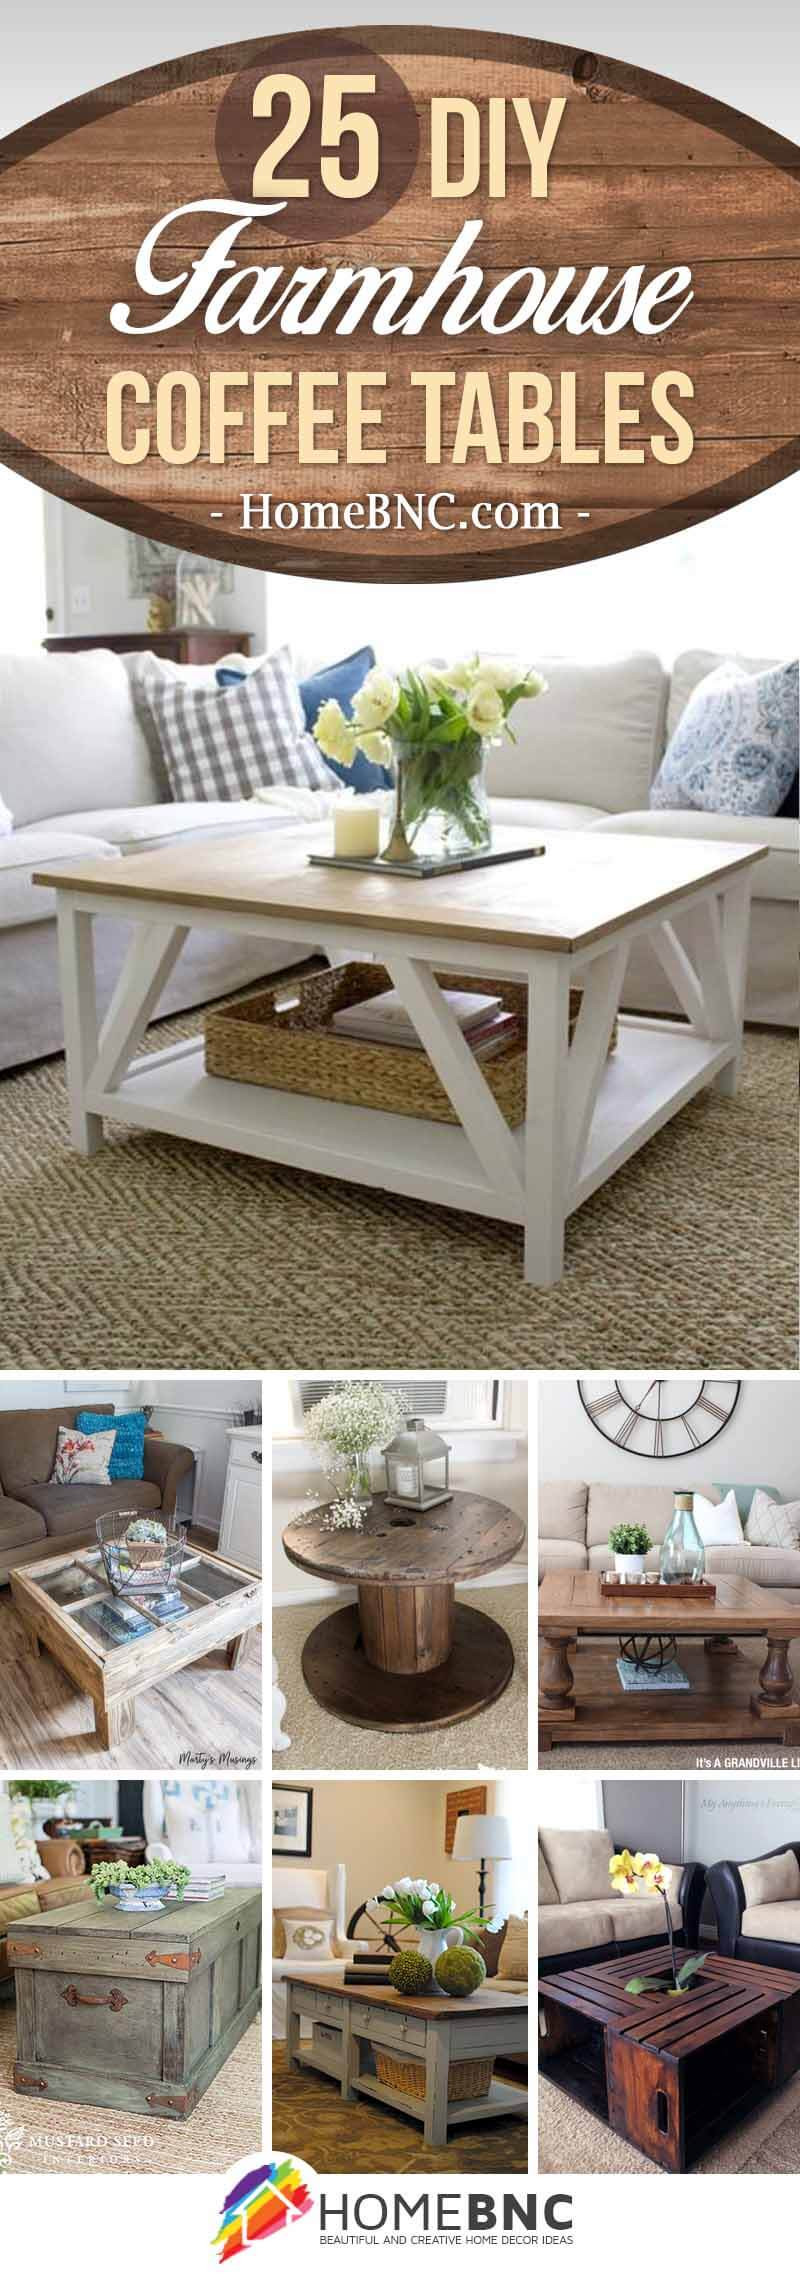 Best ideas about DIY Tabletop Ideas . Save or Pin 25 Best DIY Farmhouse Coffee Table Ideas and Designs for 2019 Now.